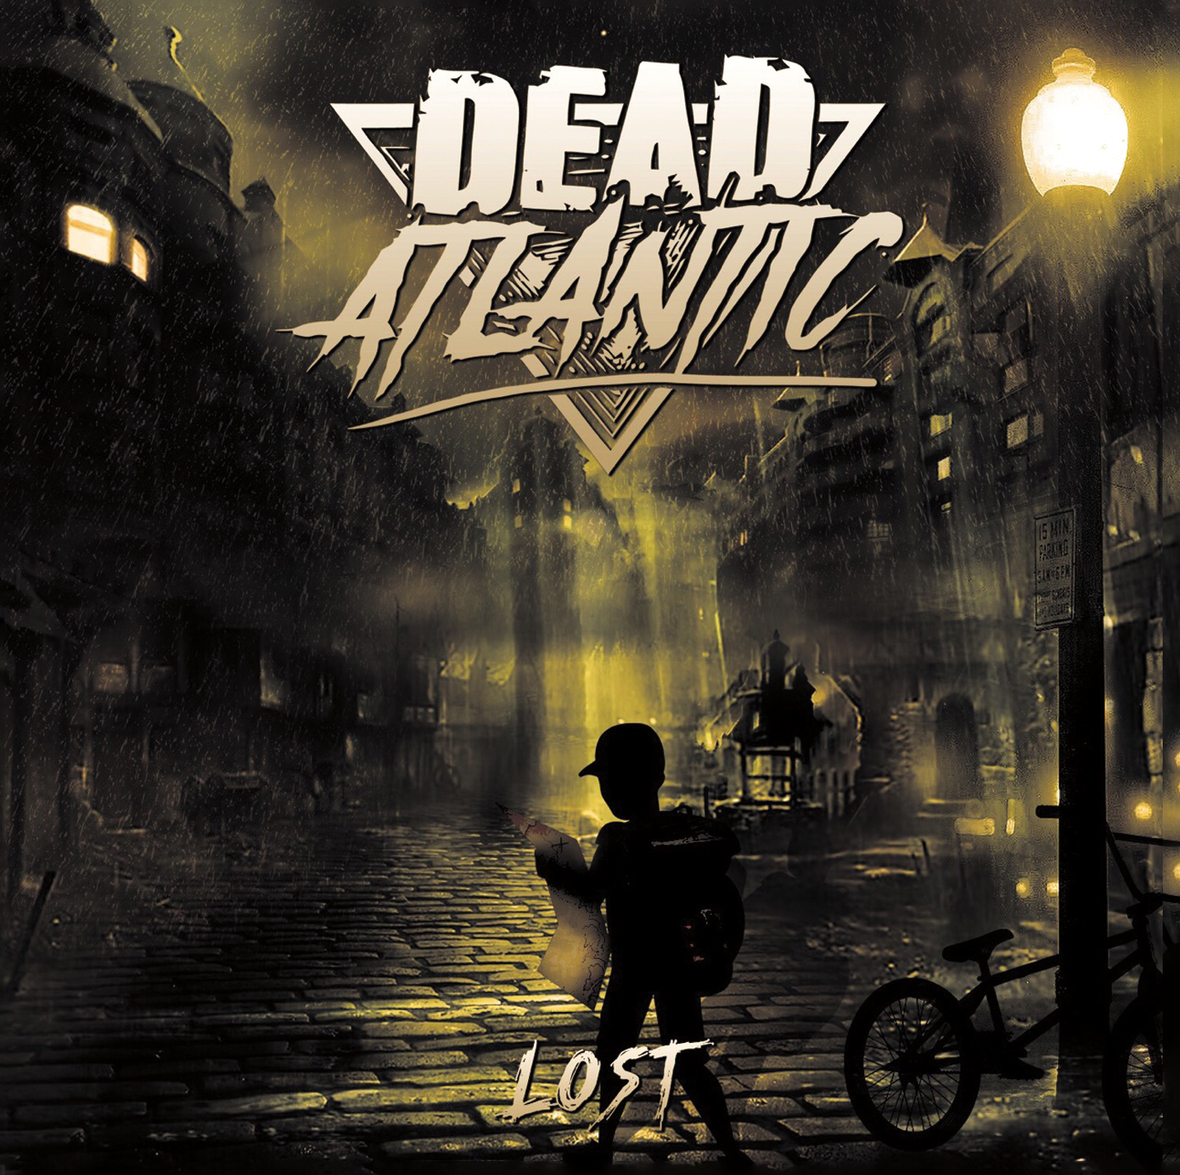 DEAD_ATLANTIC_LOST_FRONT_COVER_TEMPLATE.jpg